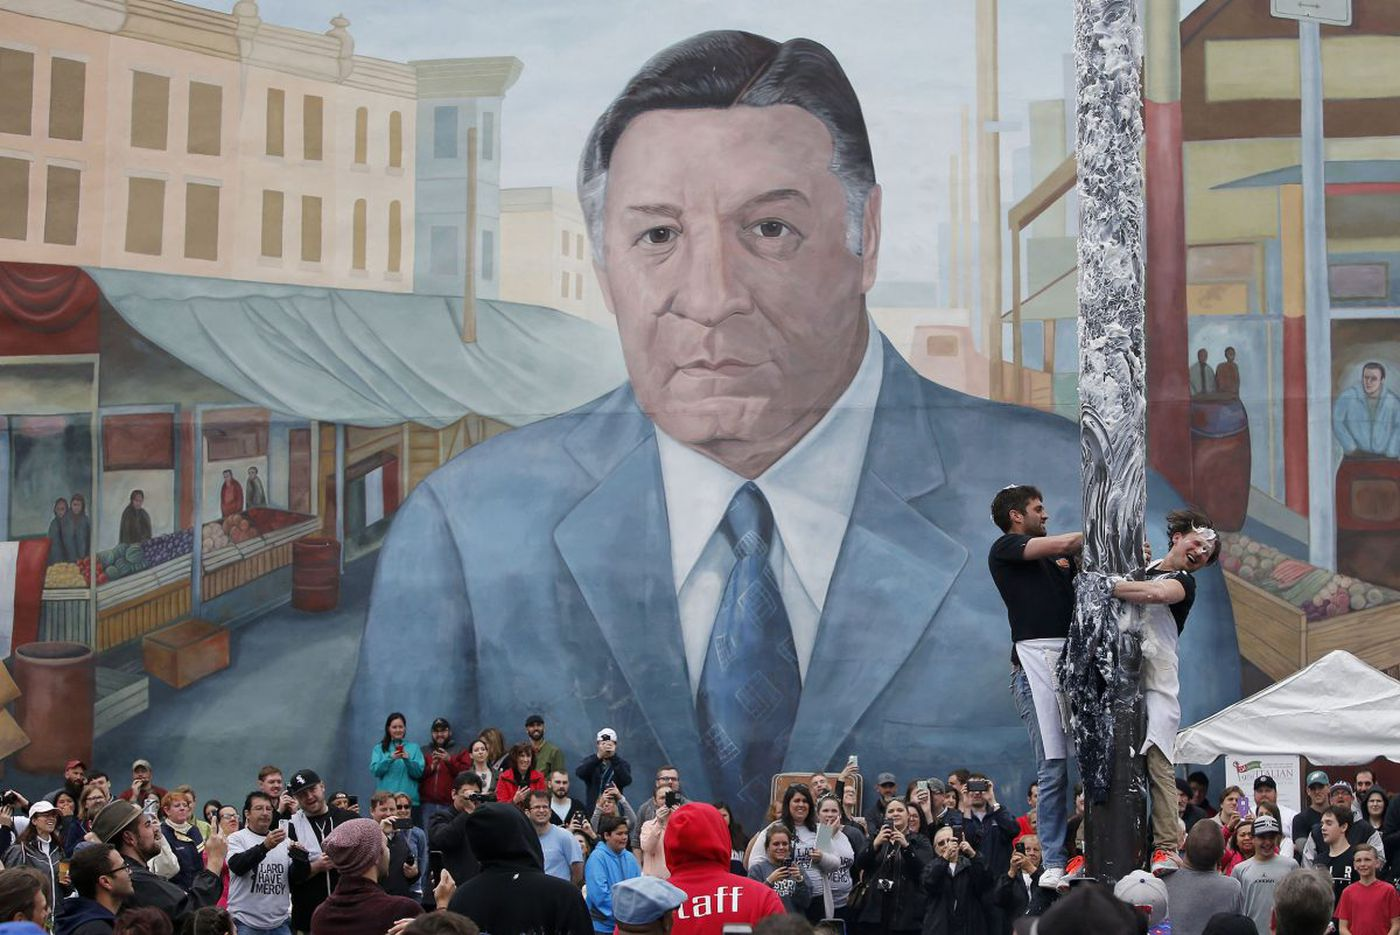 Jane Golden: Now is the time for a public conversation about the Rizzo mural